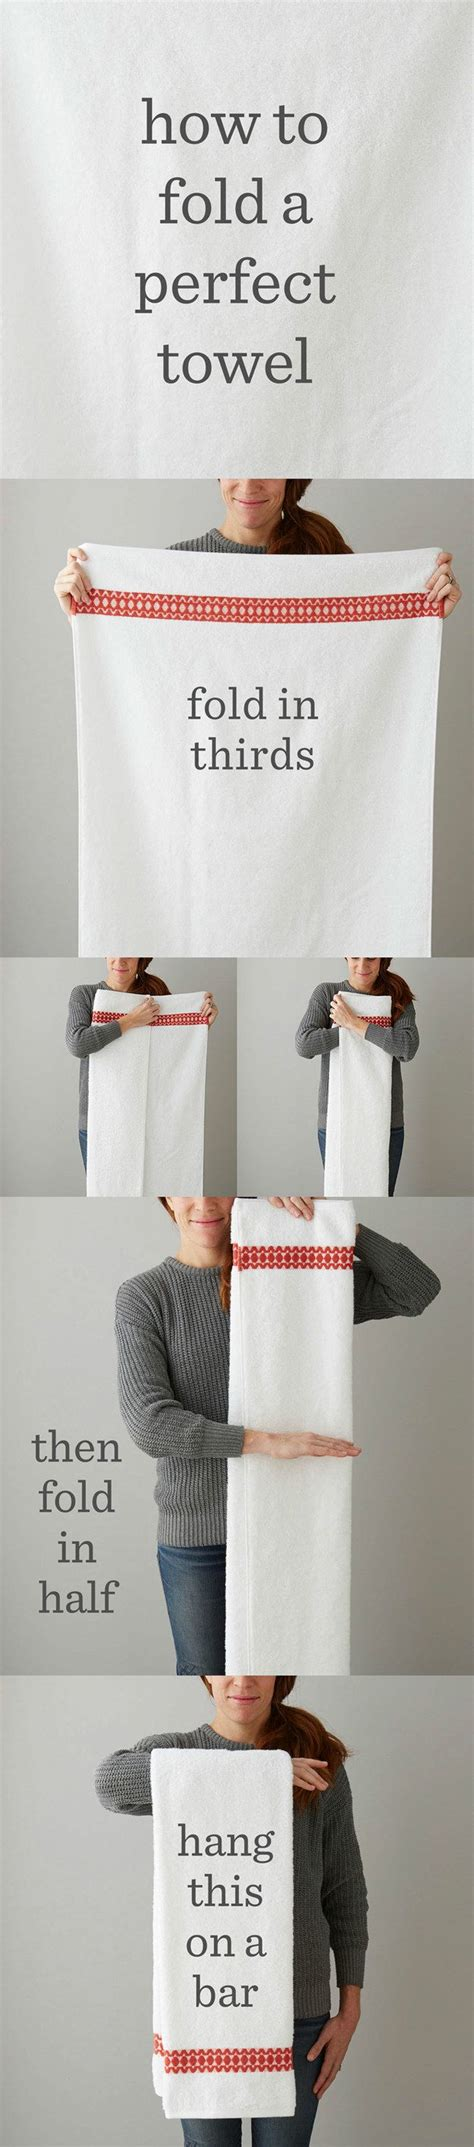 how to fold bathroom towels for hanging 17 best ideas about folding bath towels on pinterest how to fold towels decorative